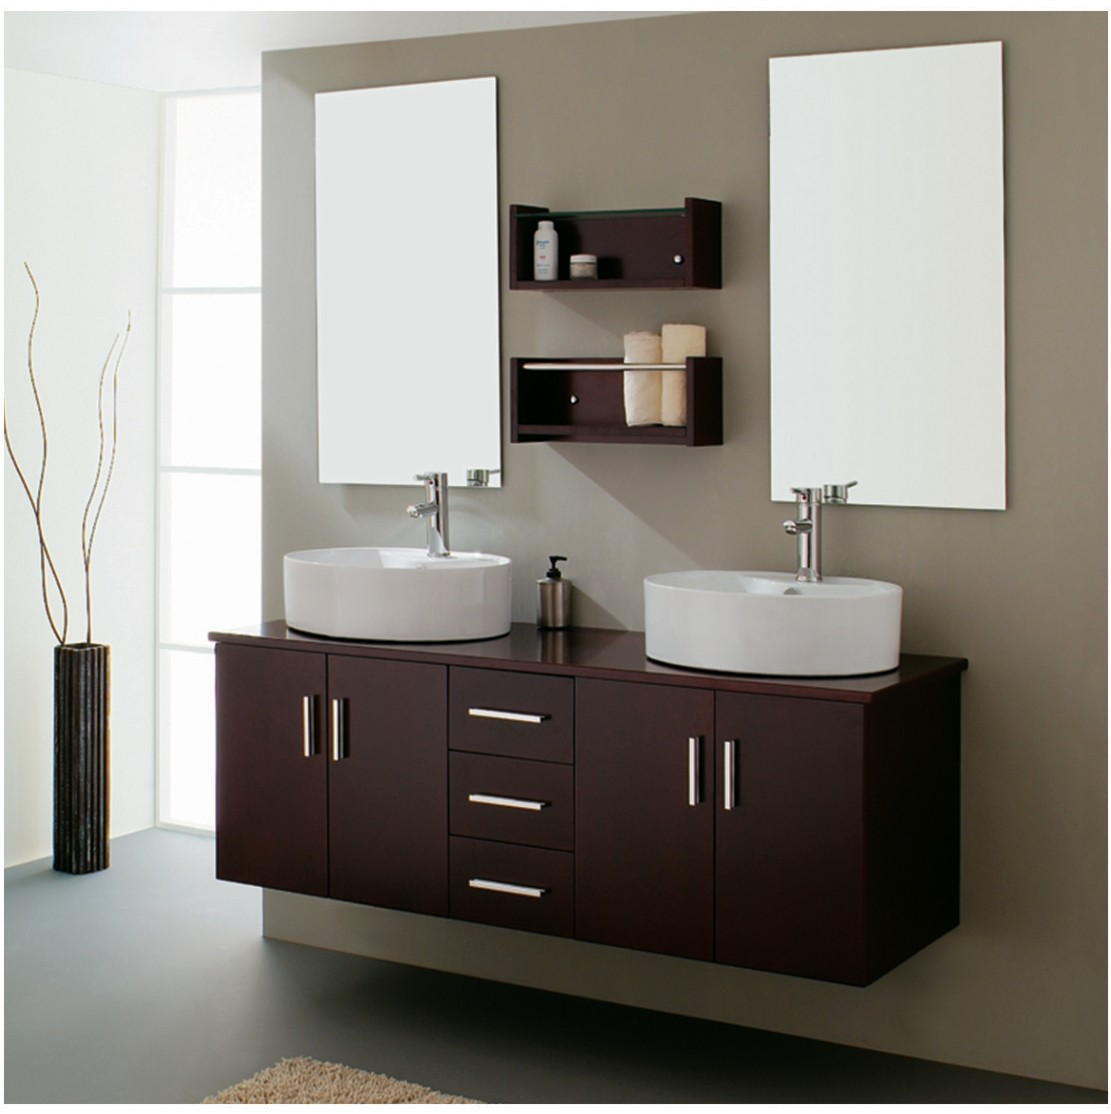 Small bathroom vanity with sink ideas small room decorating ideas - Small space bathroom vanities minimalist ...